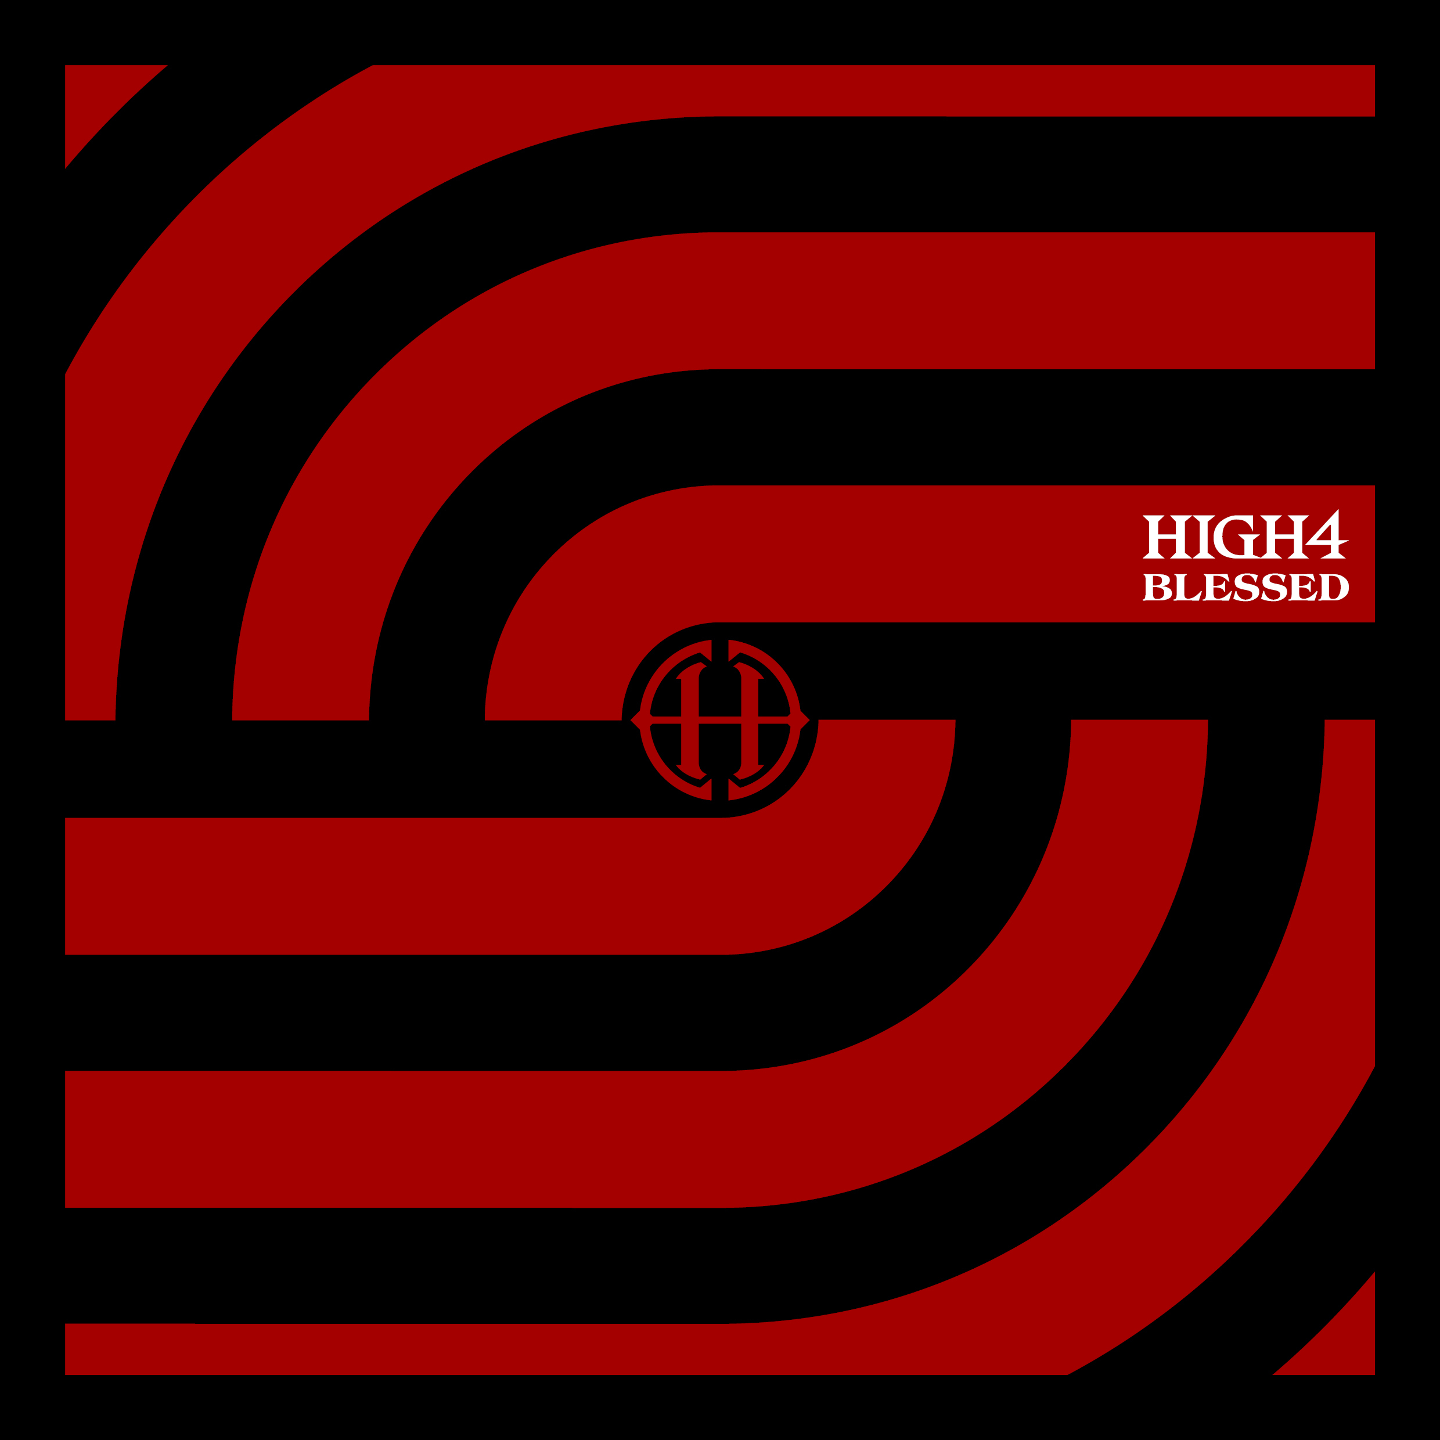 Blessed (HIGH4)